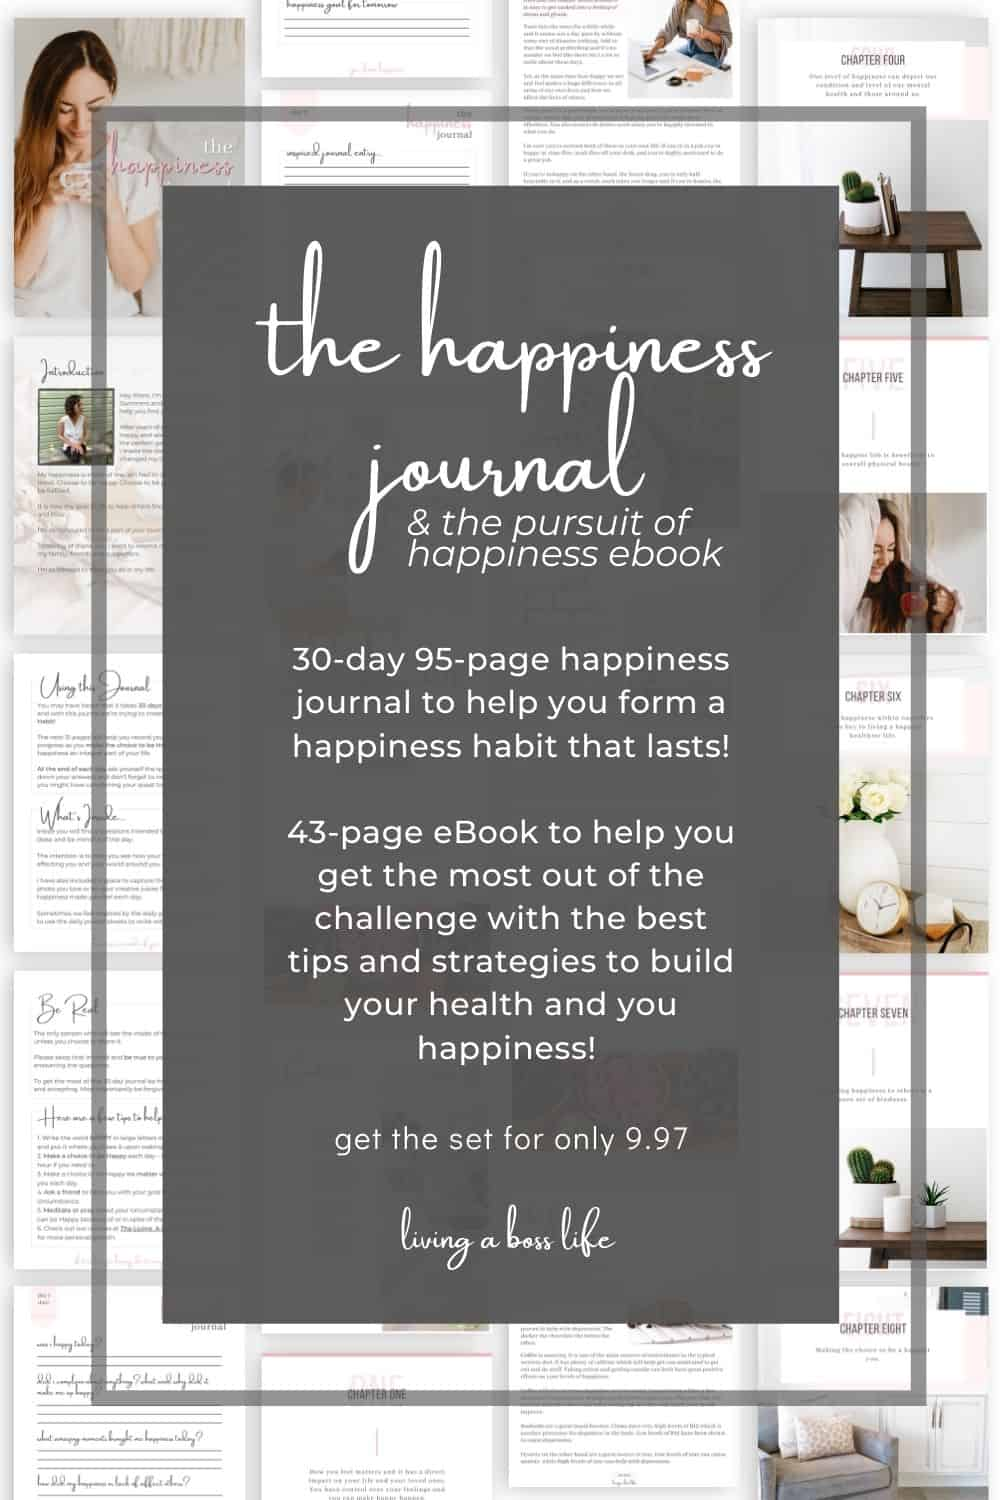 Did you know you can start being happy right now? It's true! When we retrain our minds by building healthy habits in our daily routine we can achieve anything we set our mind to. This 30 day journal helps do just that plus our bonus ebook for tons of tips to happiness and a healthier you!